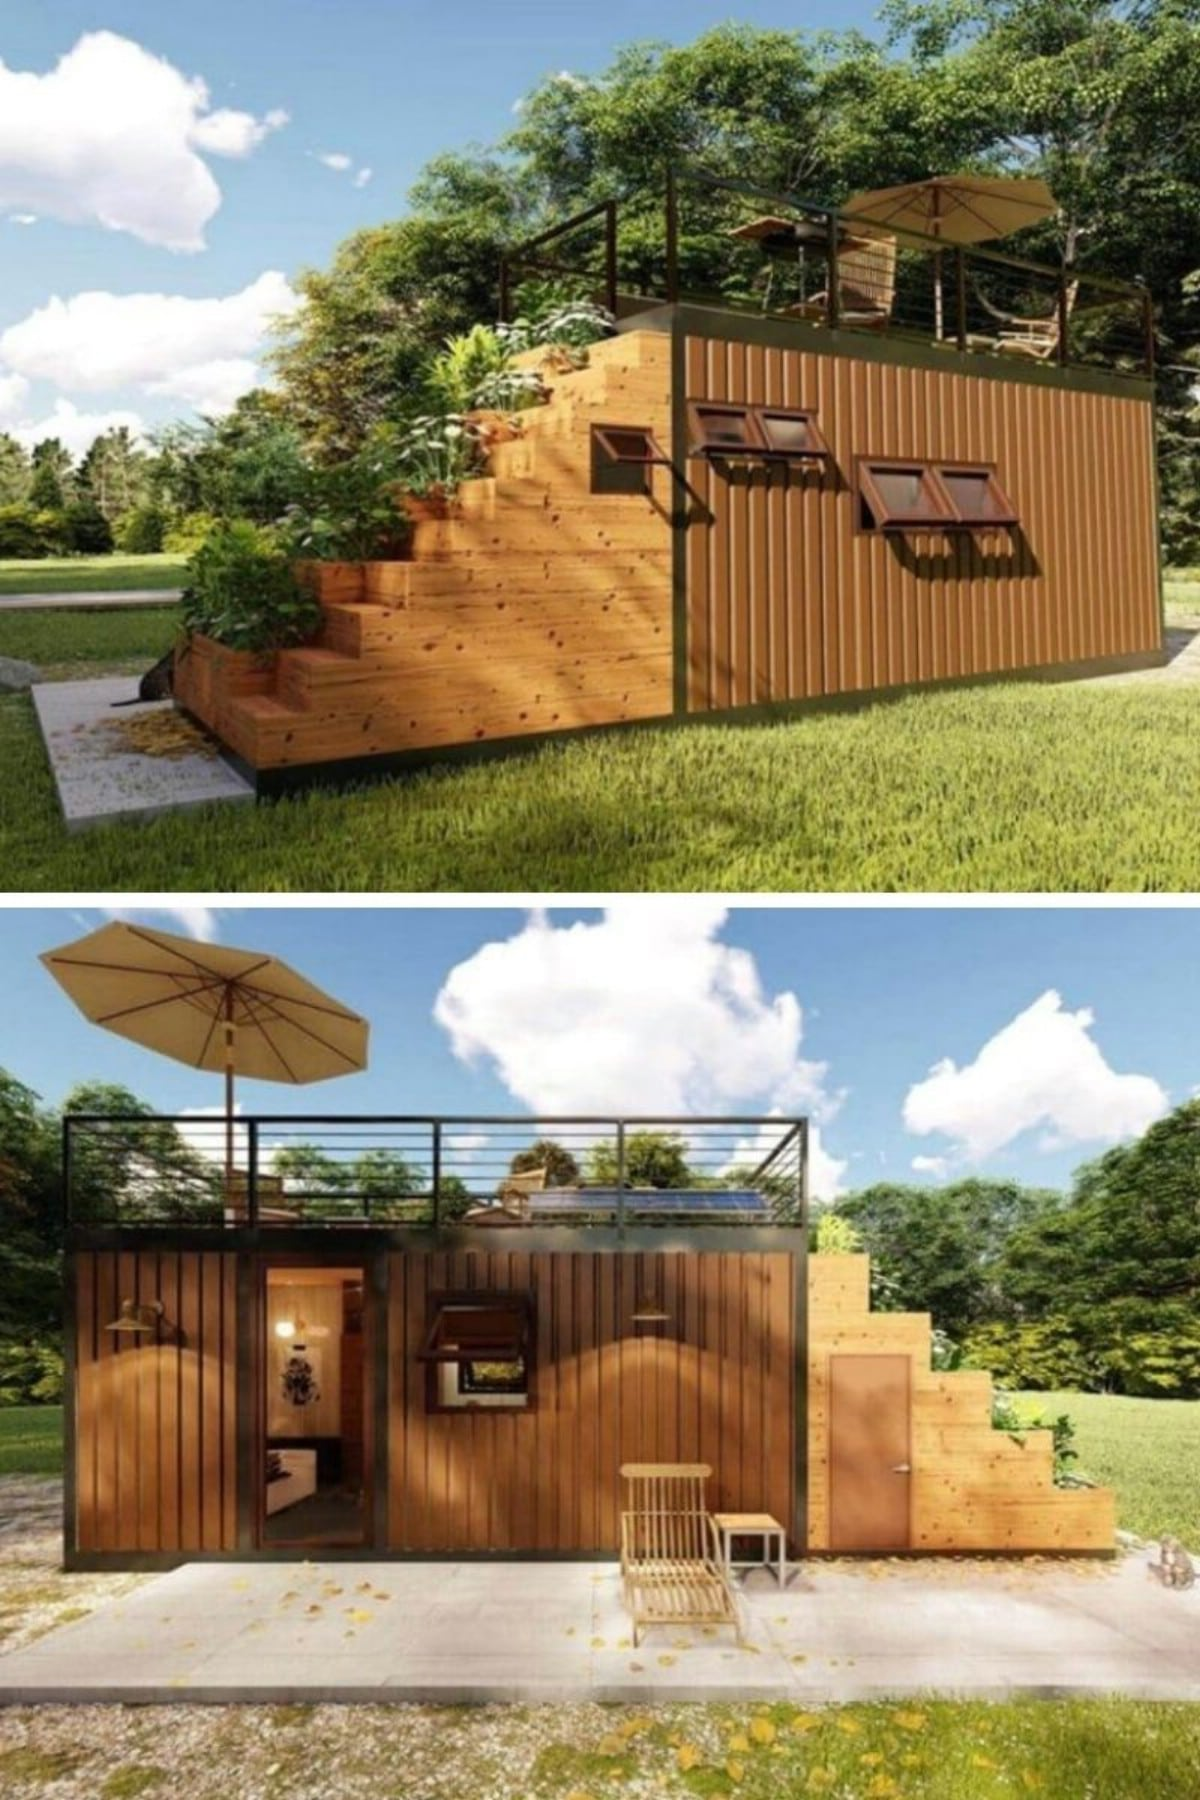 Rooftop Garden Tiny House